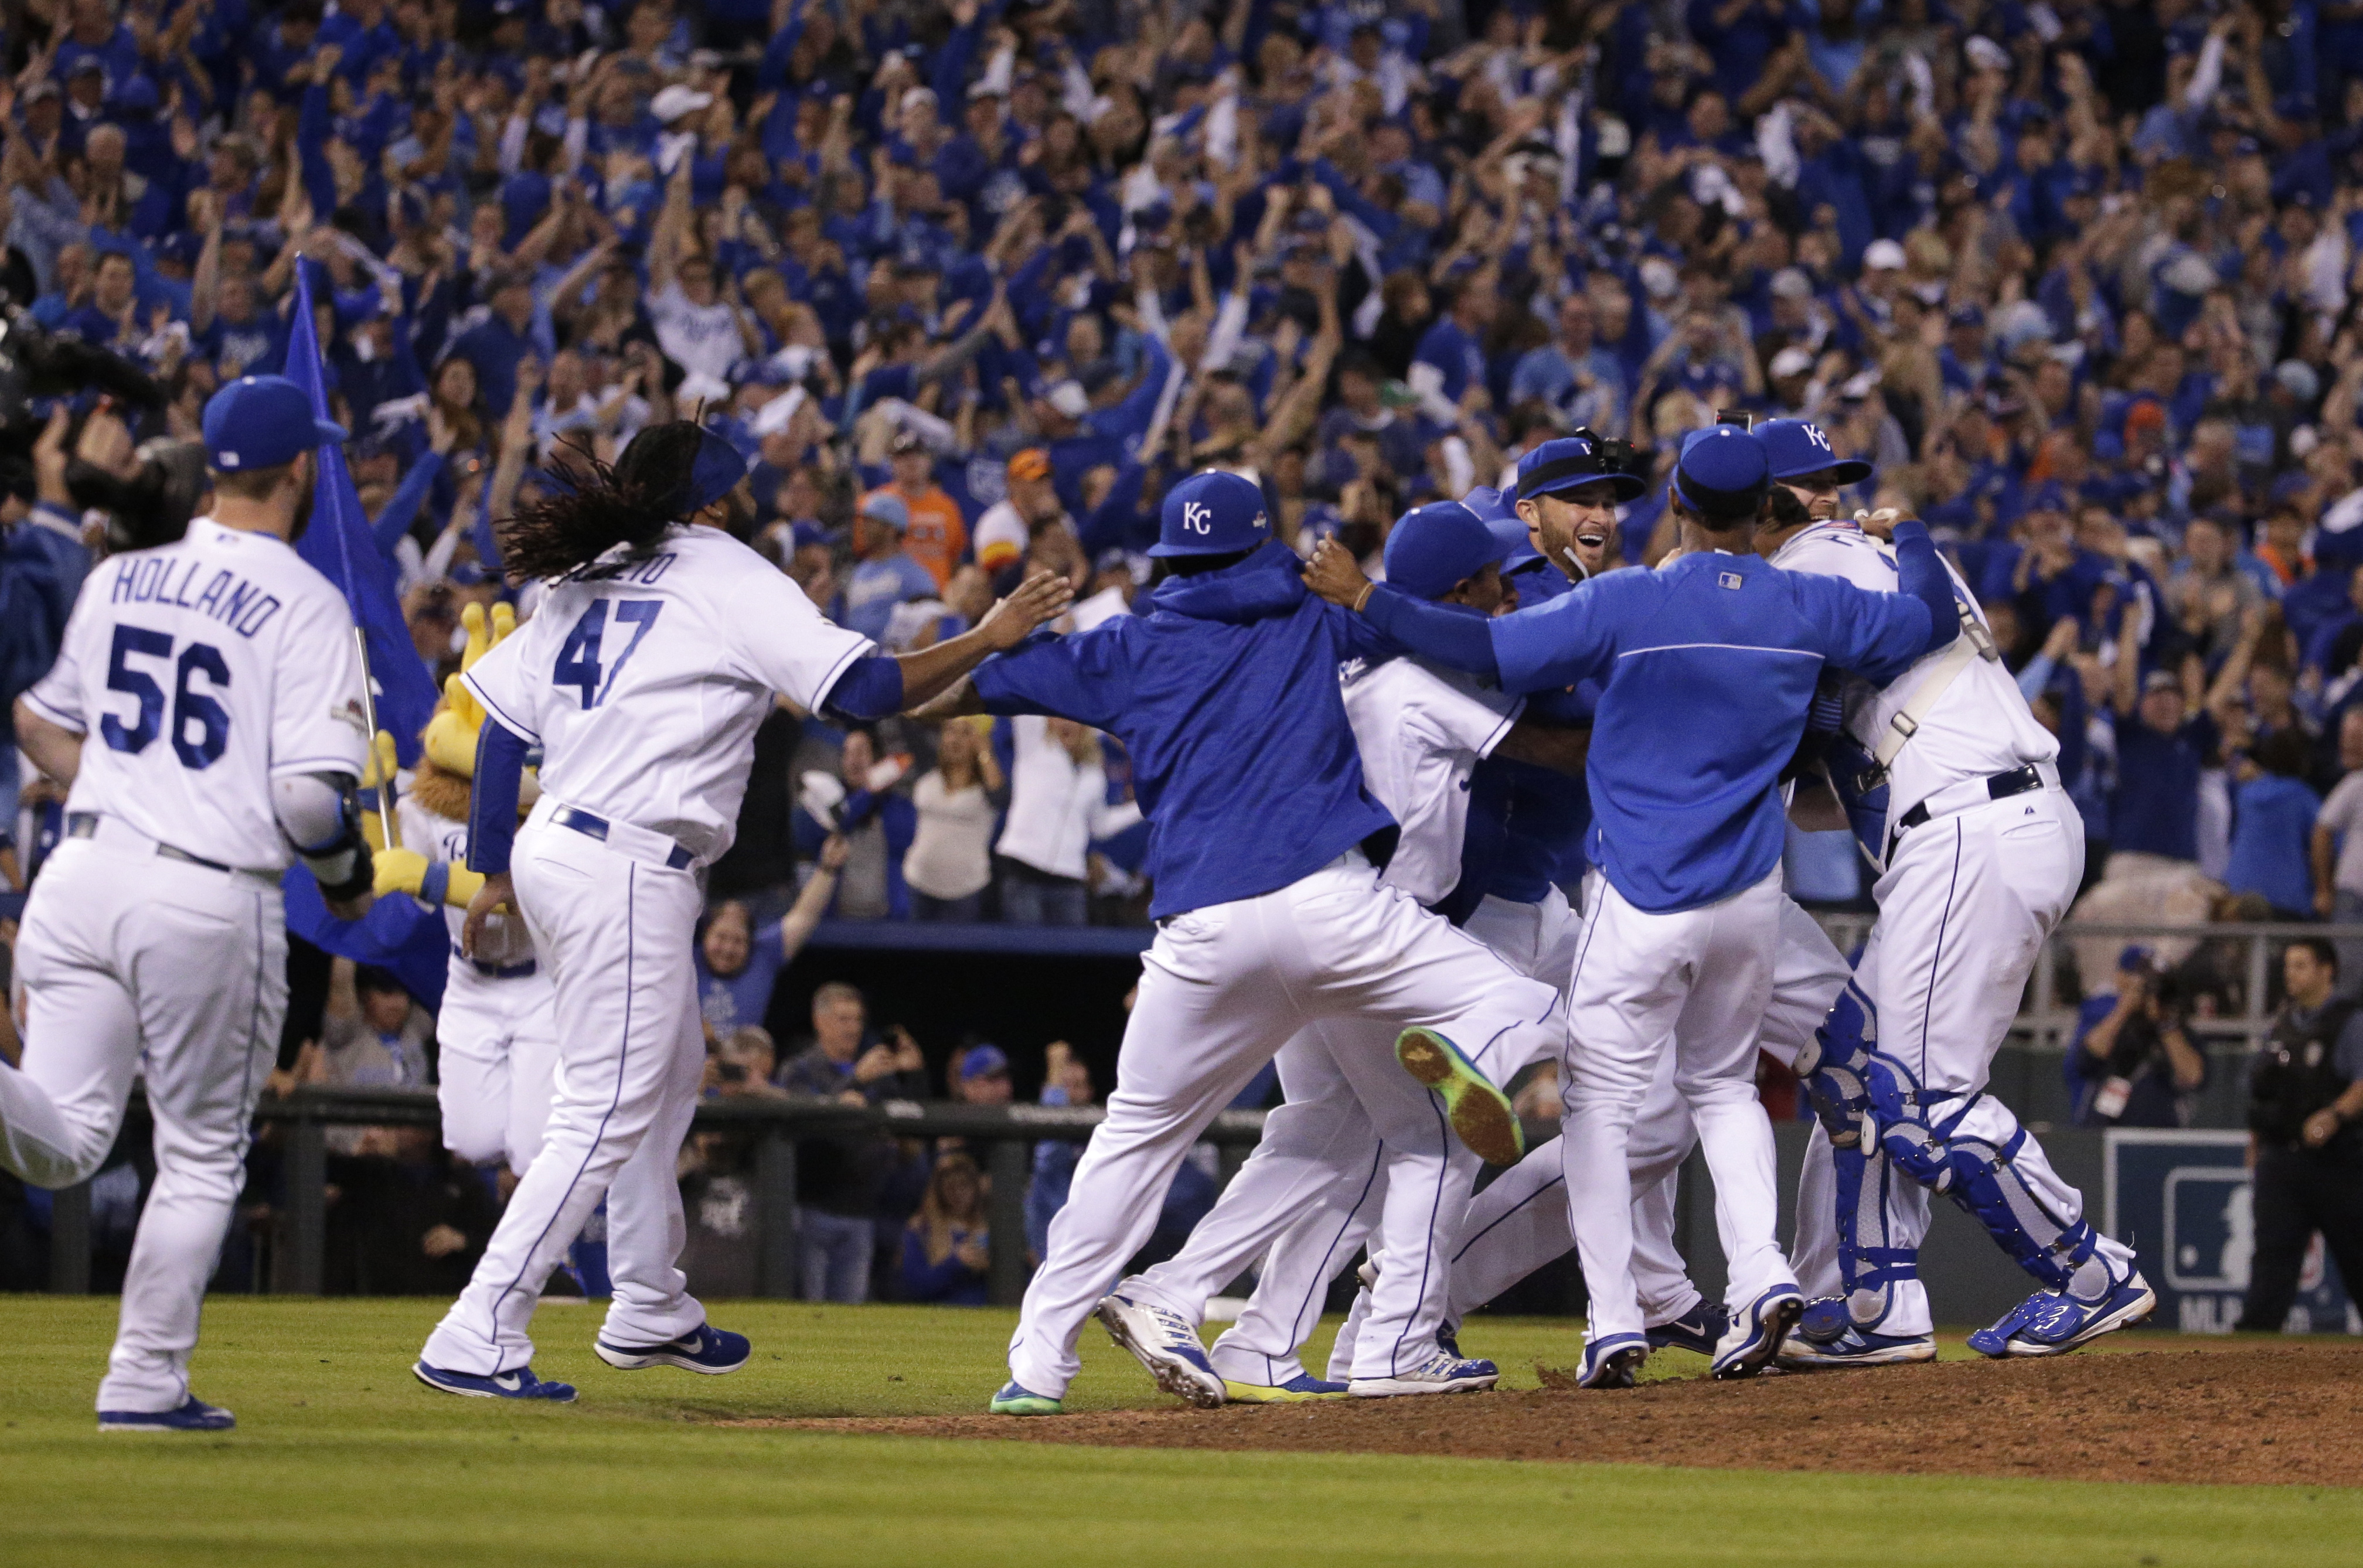 Kansas City Royals players celebrate on the field after their 7-2 win over the Houston Astros in Game 5 of baseball's American League Division Series, Wednesday, Oct. 14, 2015, in Kansas City, Mo. (AP Photo/Charlie Riedel)